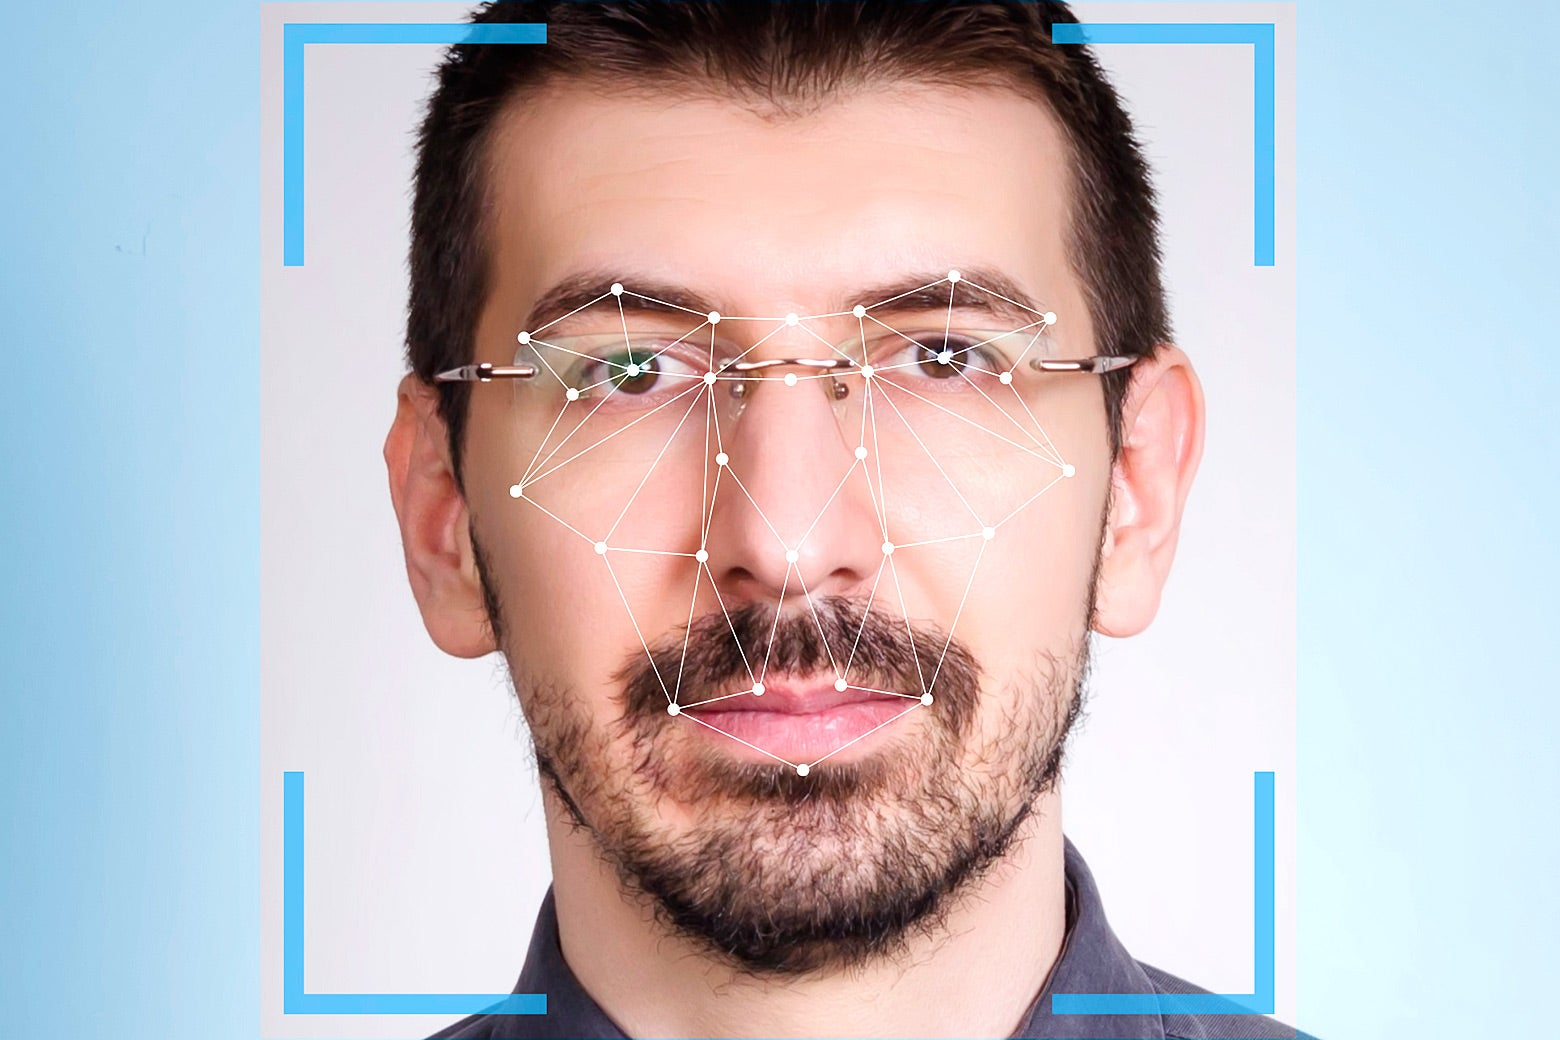 A man's face is focused on by facial recognition software.